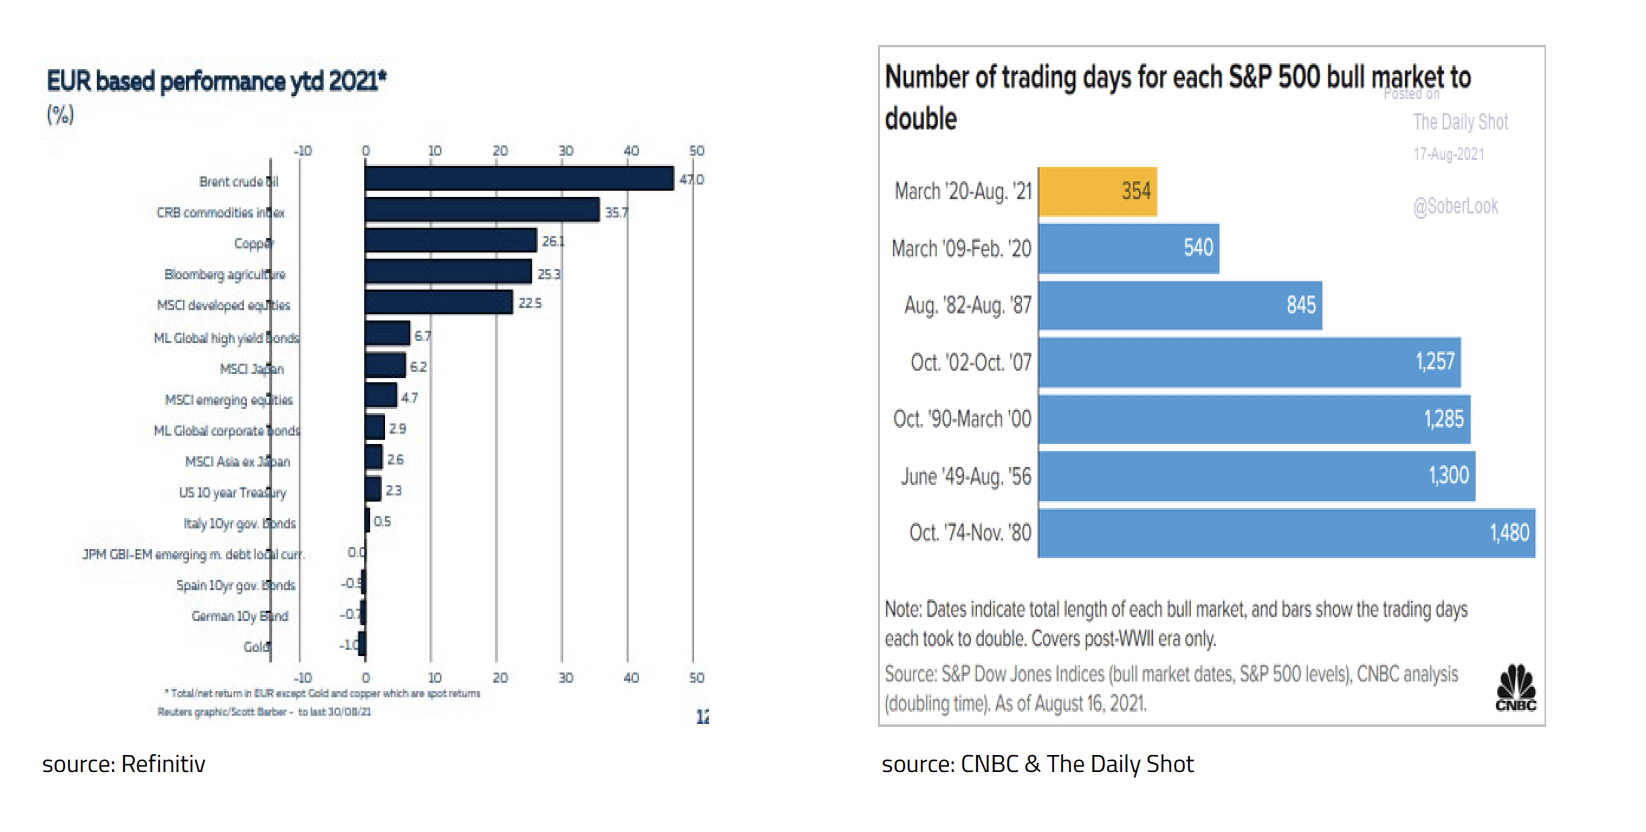 10-CNBC & The Daily Shot sept 2021